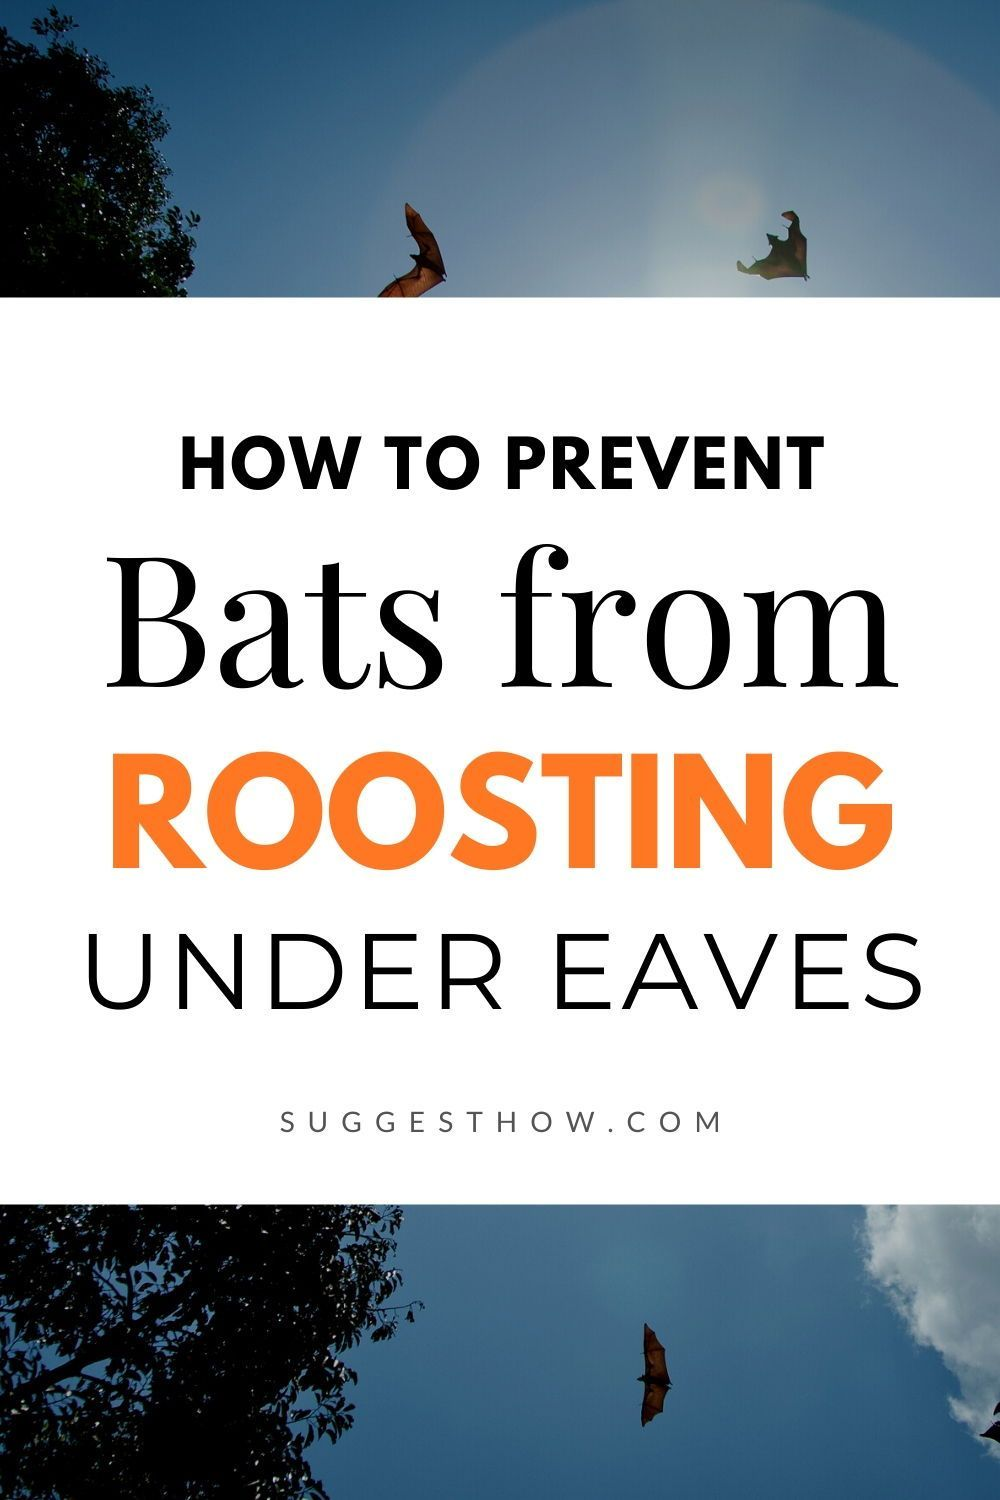 Bats are mammals that tend to live on any narrow area that